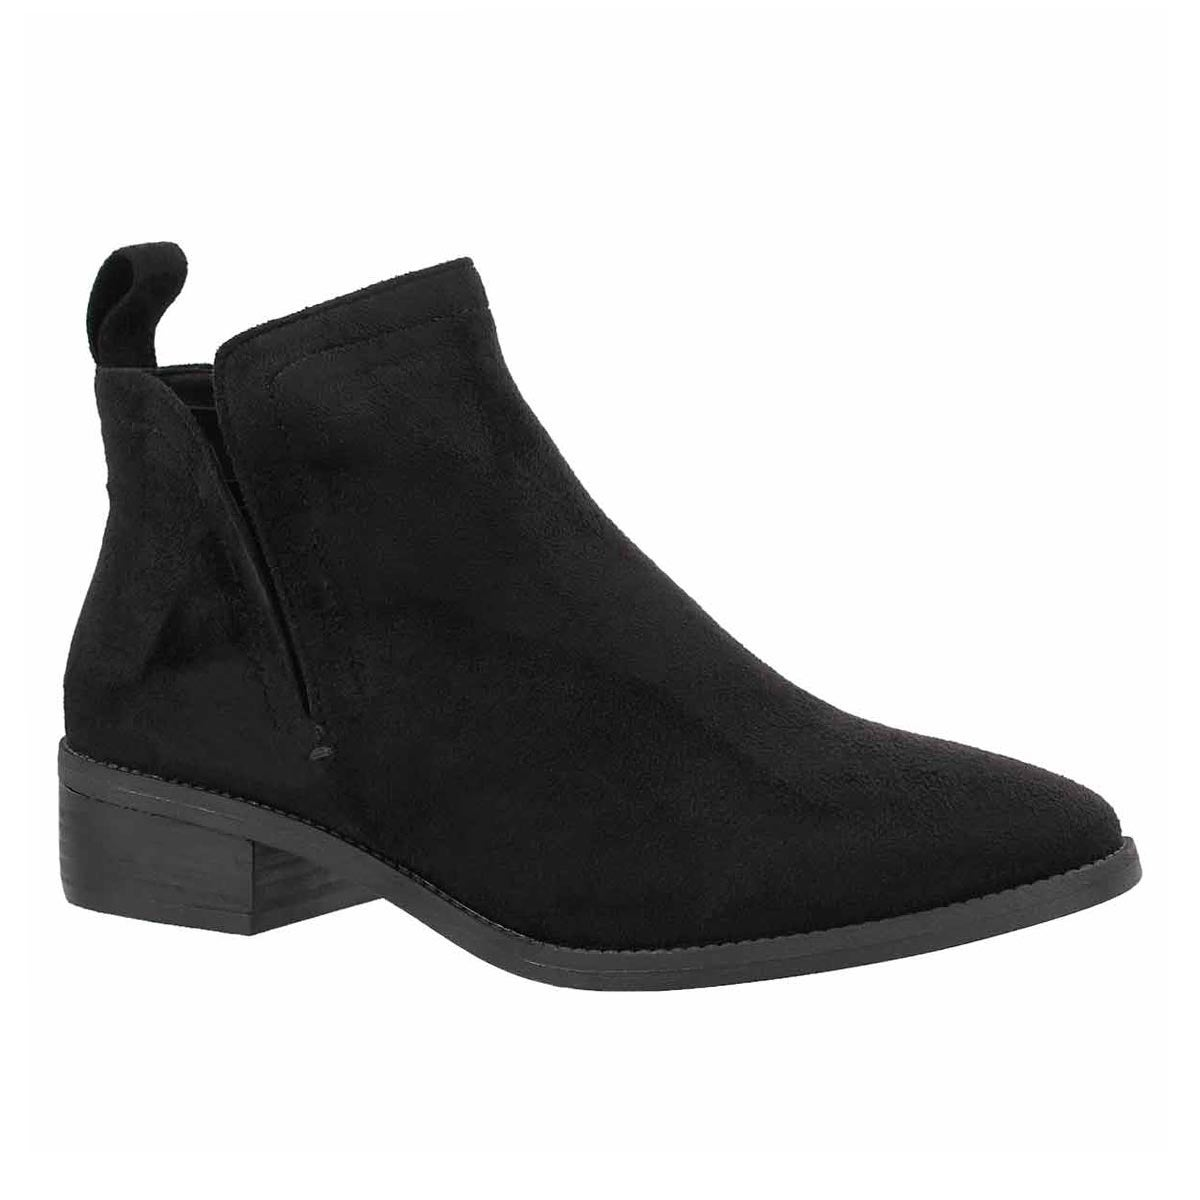 Lds Flutter black ankle boot